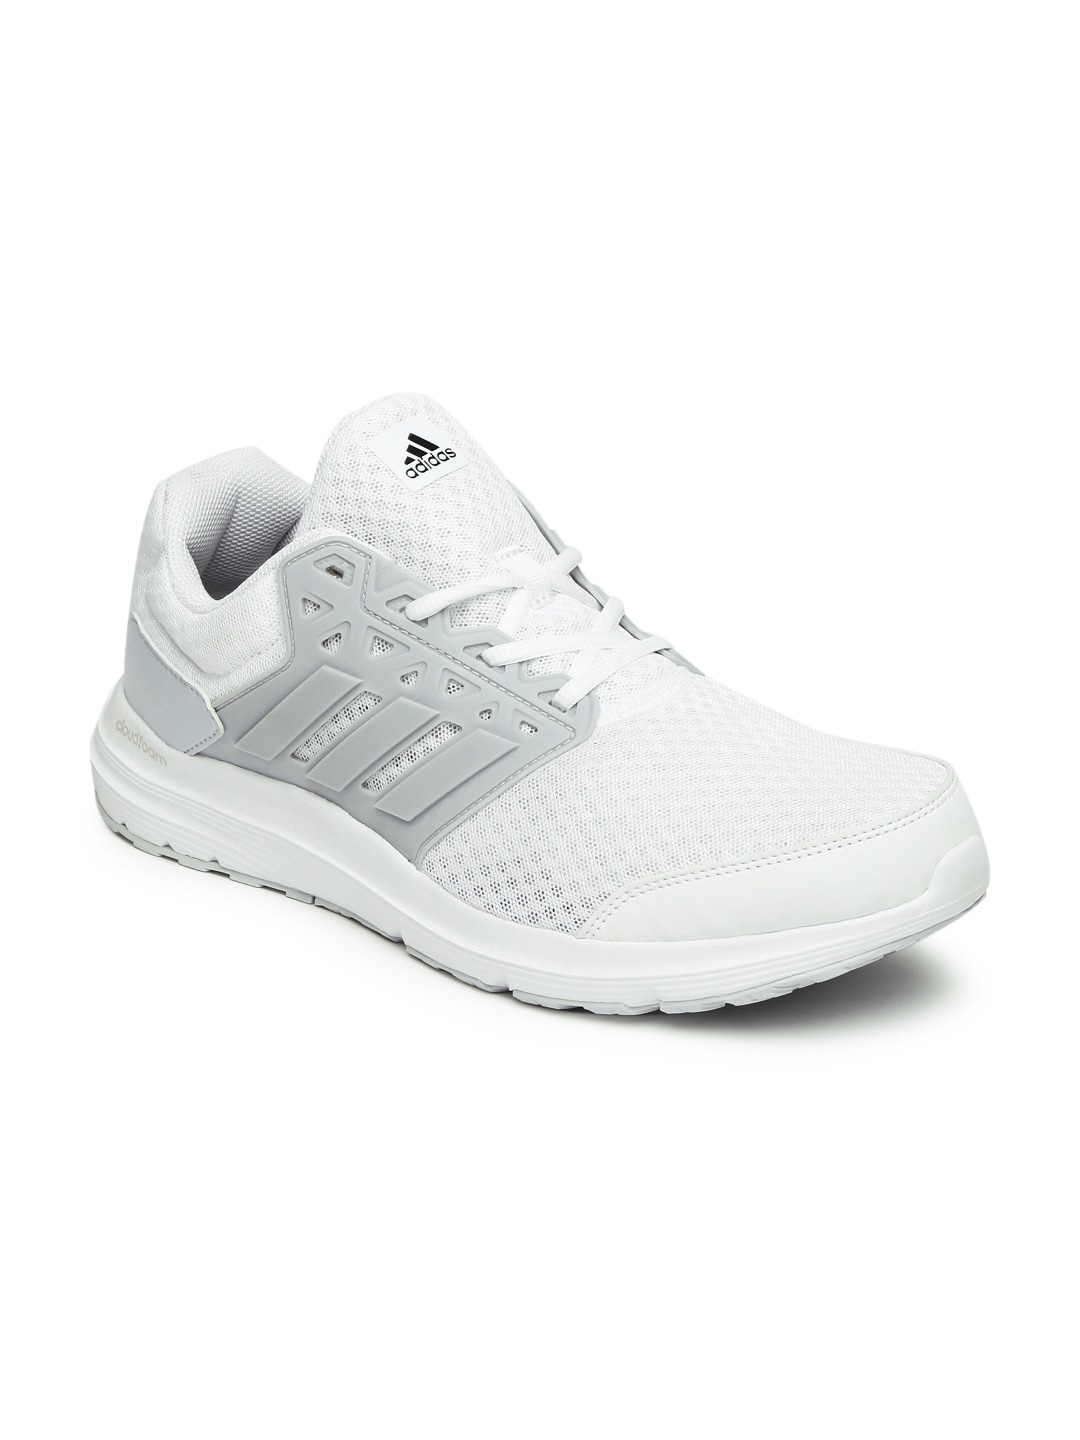 ... sports shoes bbcf9 a5c36 Adidas Men White GALAXY 3 M Running Shoes  price in India ... 99ae14914